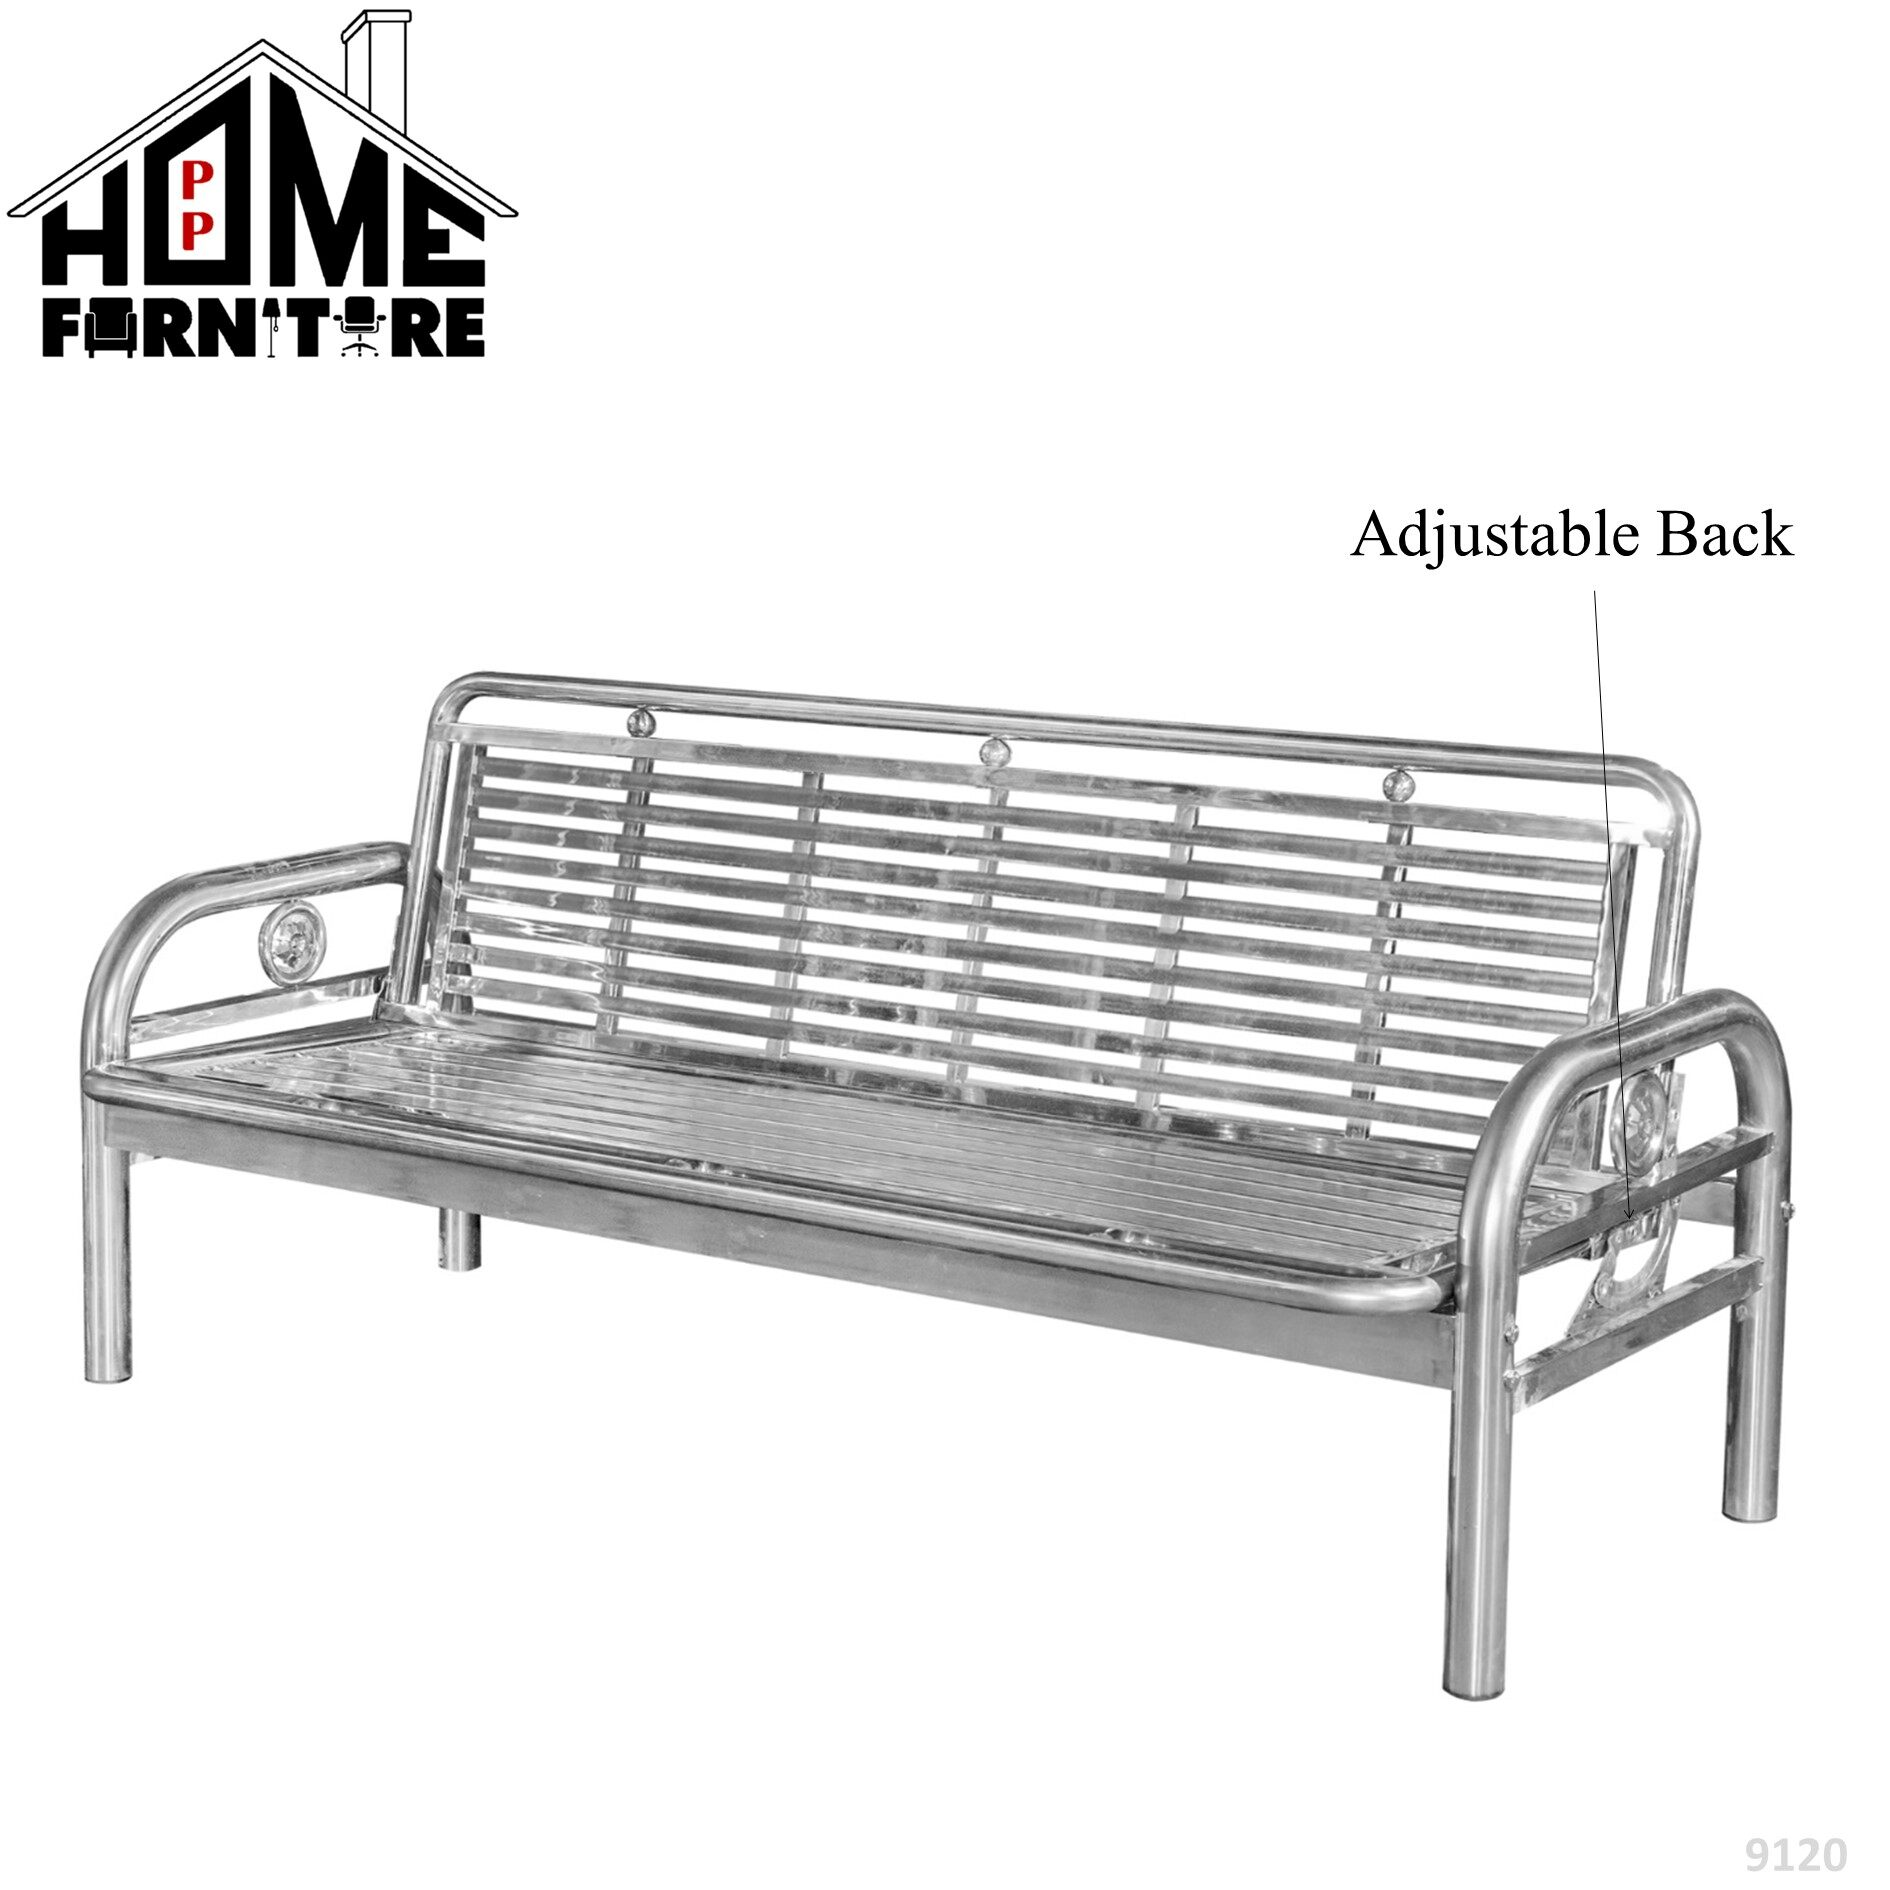 PP HOME Metal Bench chair/Steel bench/ Sofa bed/ Garden bench/ Waiting chair/ Long bench/ Outdoor chair/Outdoor furniture/ Patio chair/ Kerusi besi/ Kerusi rehat/Bangku besi/ Bangku pangjang /Kerusi taman 铁长凳/长凳椅DW5 1/2